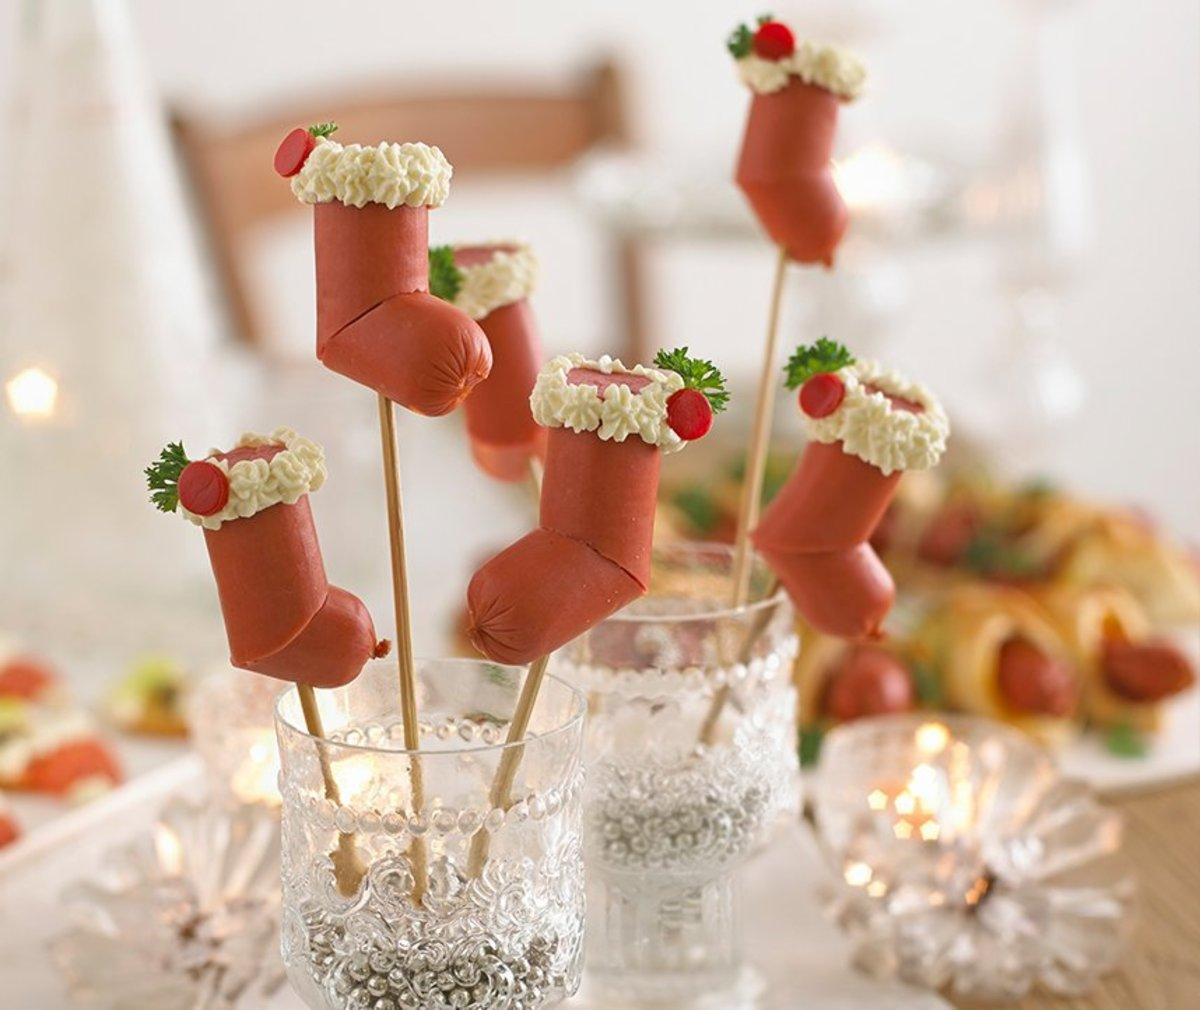 Party appetizers shaped like Christmas stockings.